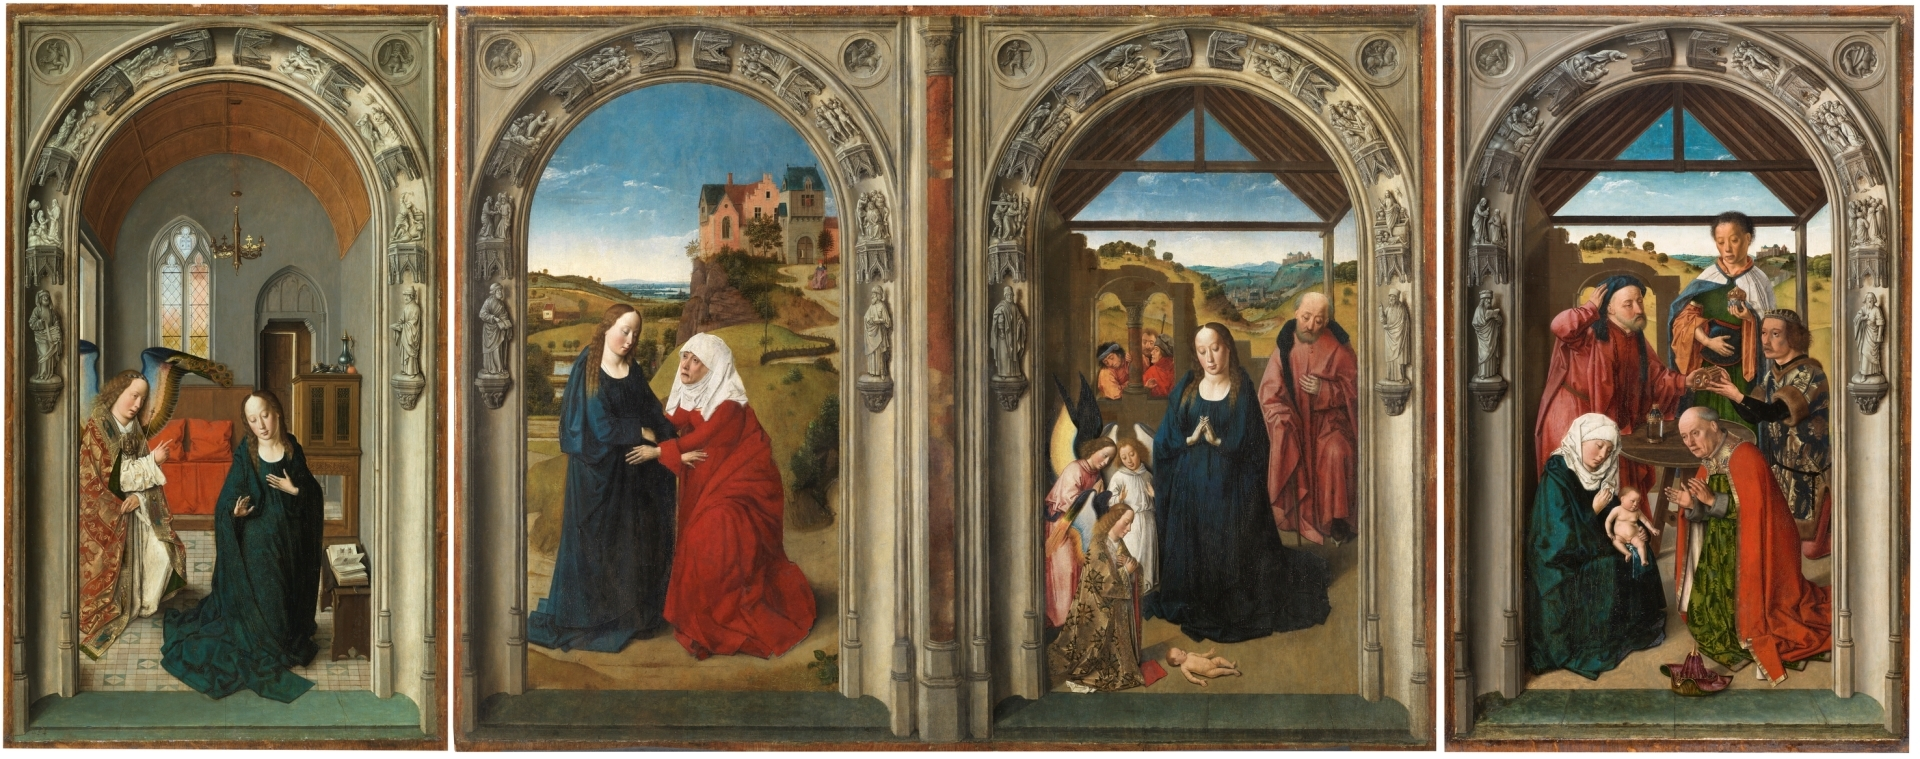 Escuela De Arte Flamenco Zurich Triptych Of The Life Of The Virgin The Collection Museo